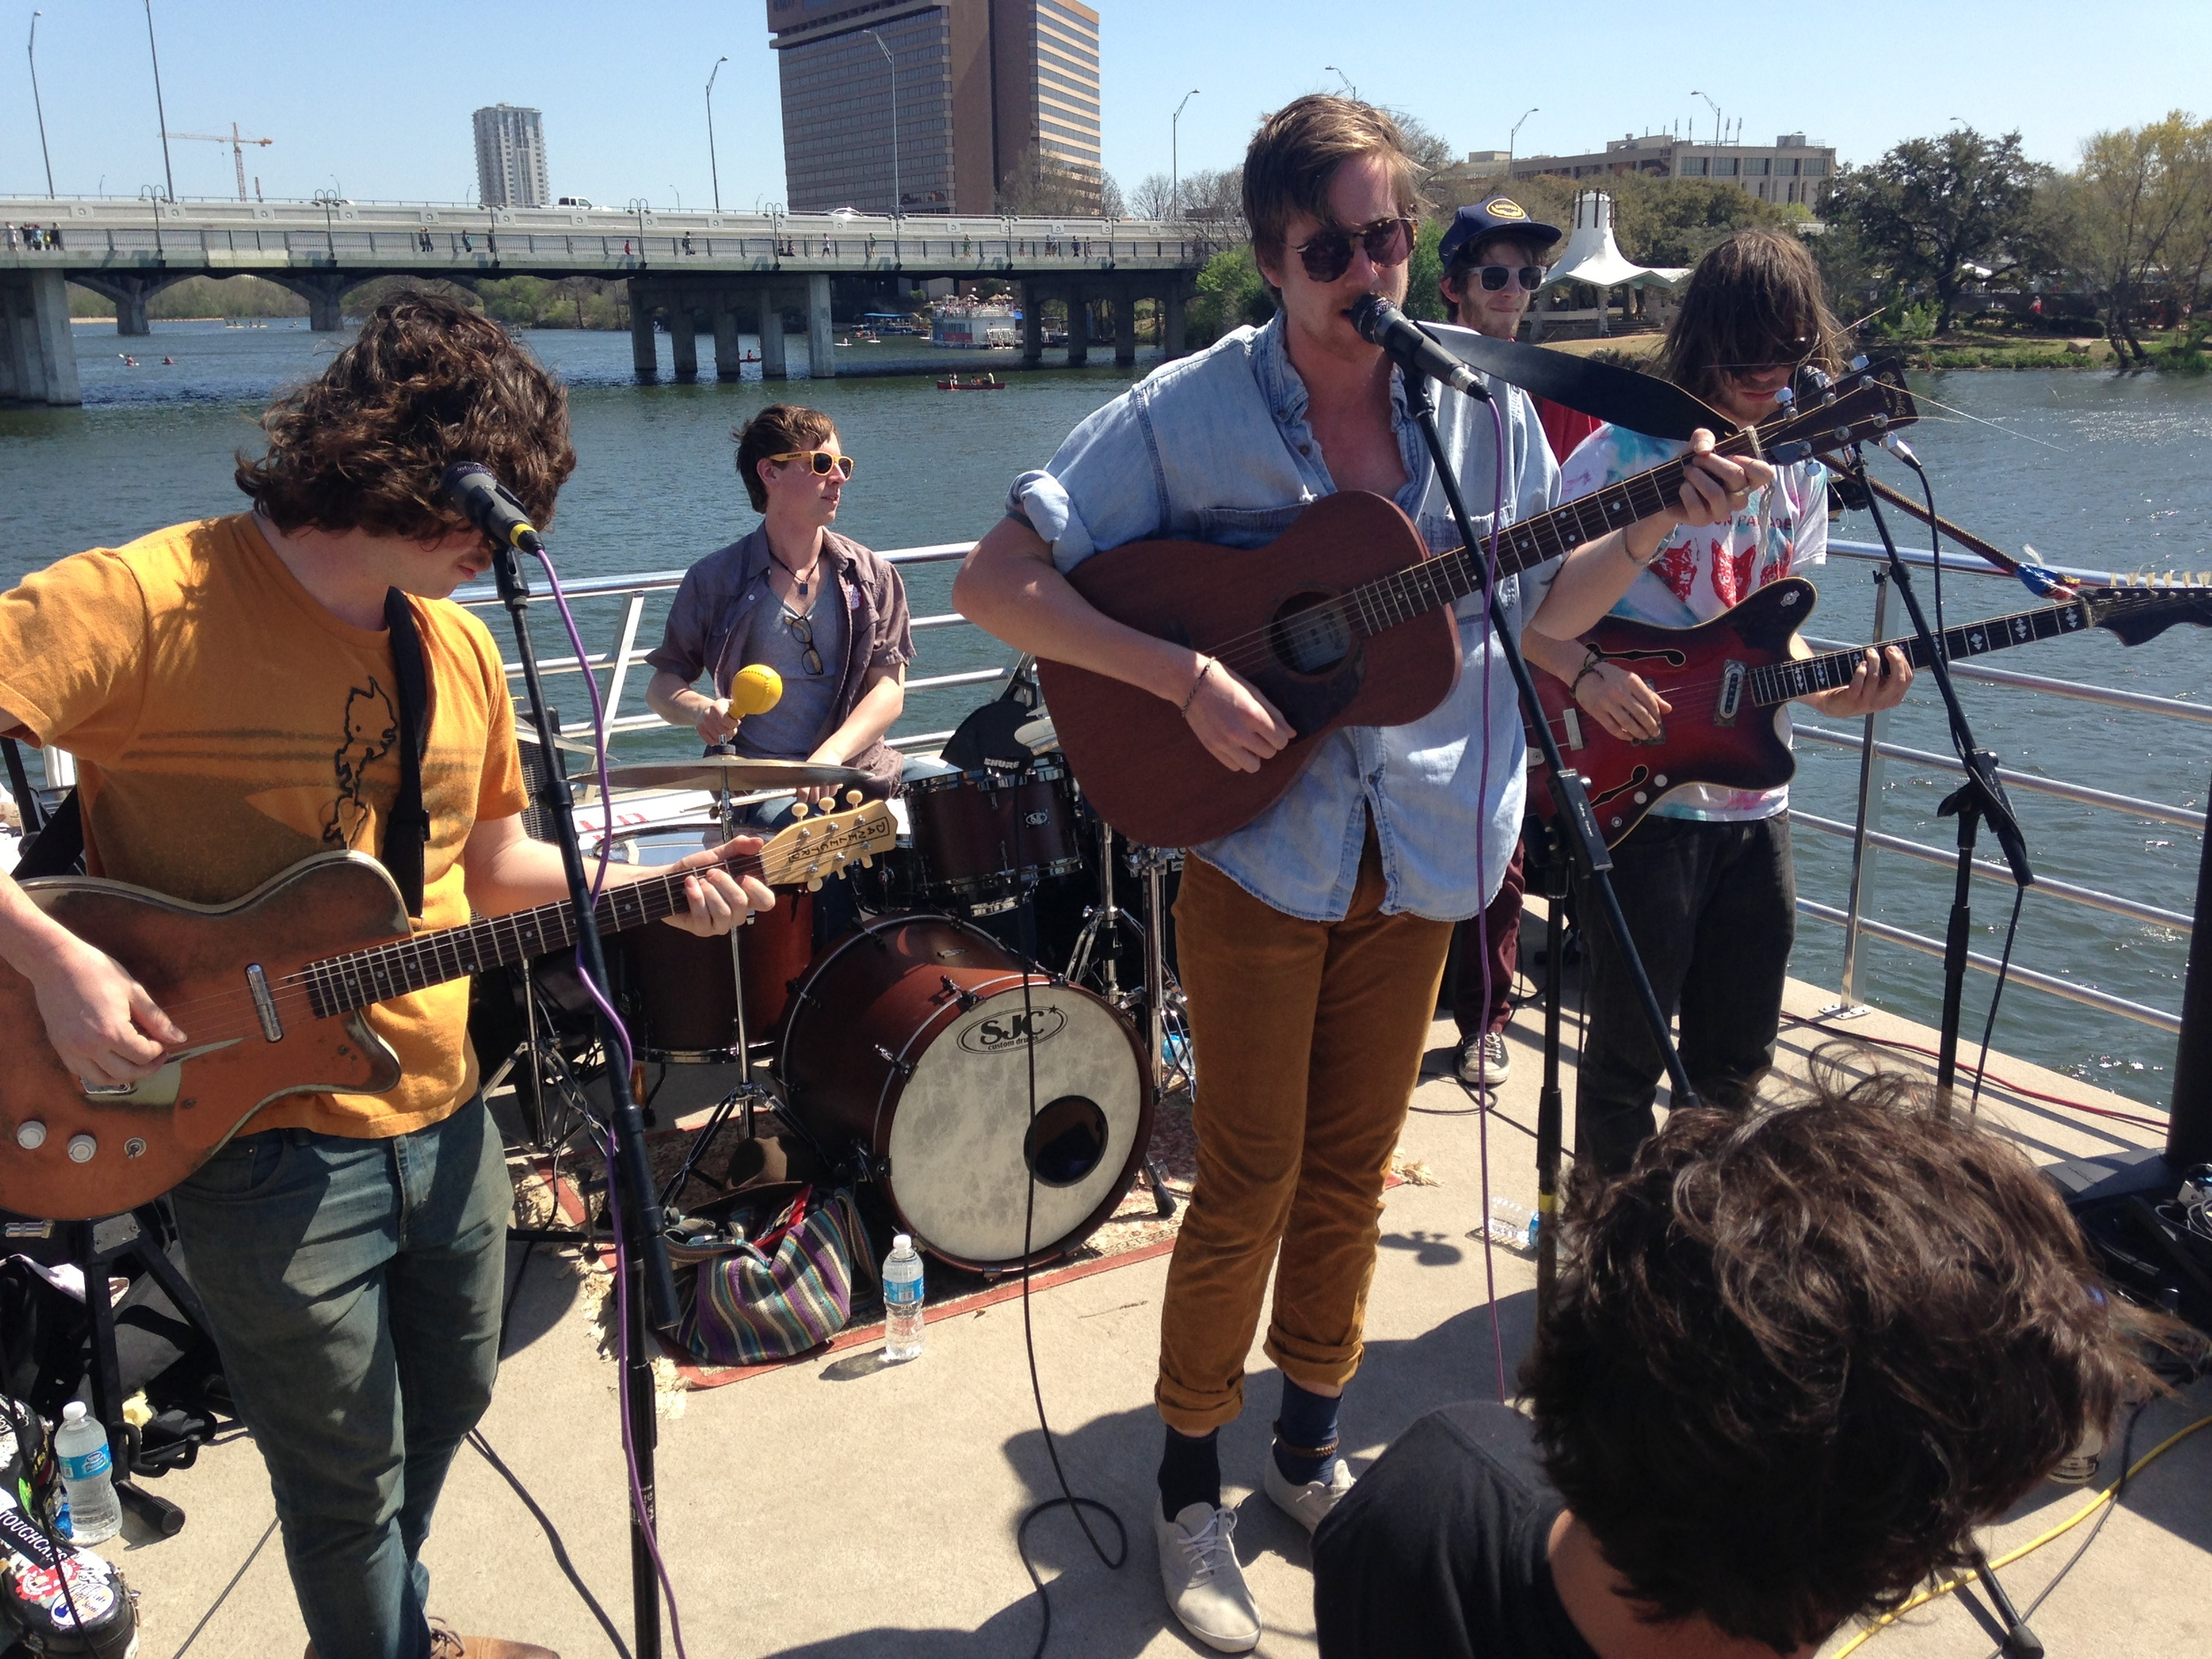 The Sun Parade on The Riverboat Show at SXSW